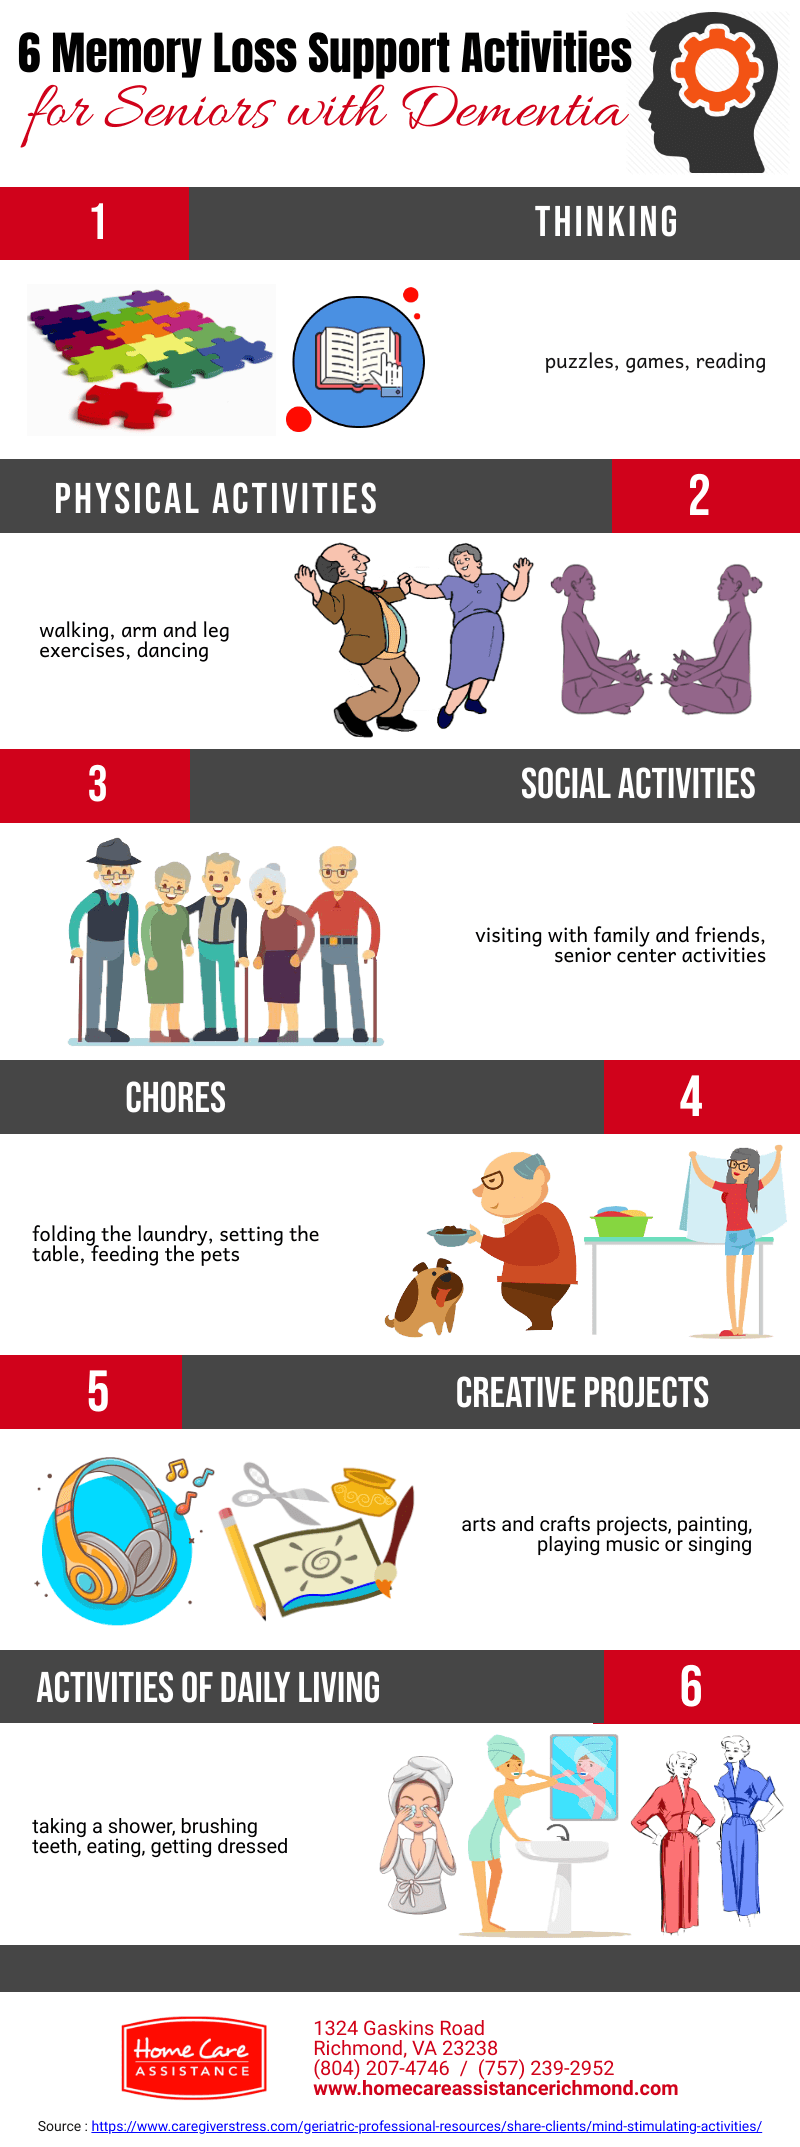 6 Memory Loss Support Activities for Dementia [Infographic]